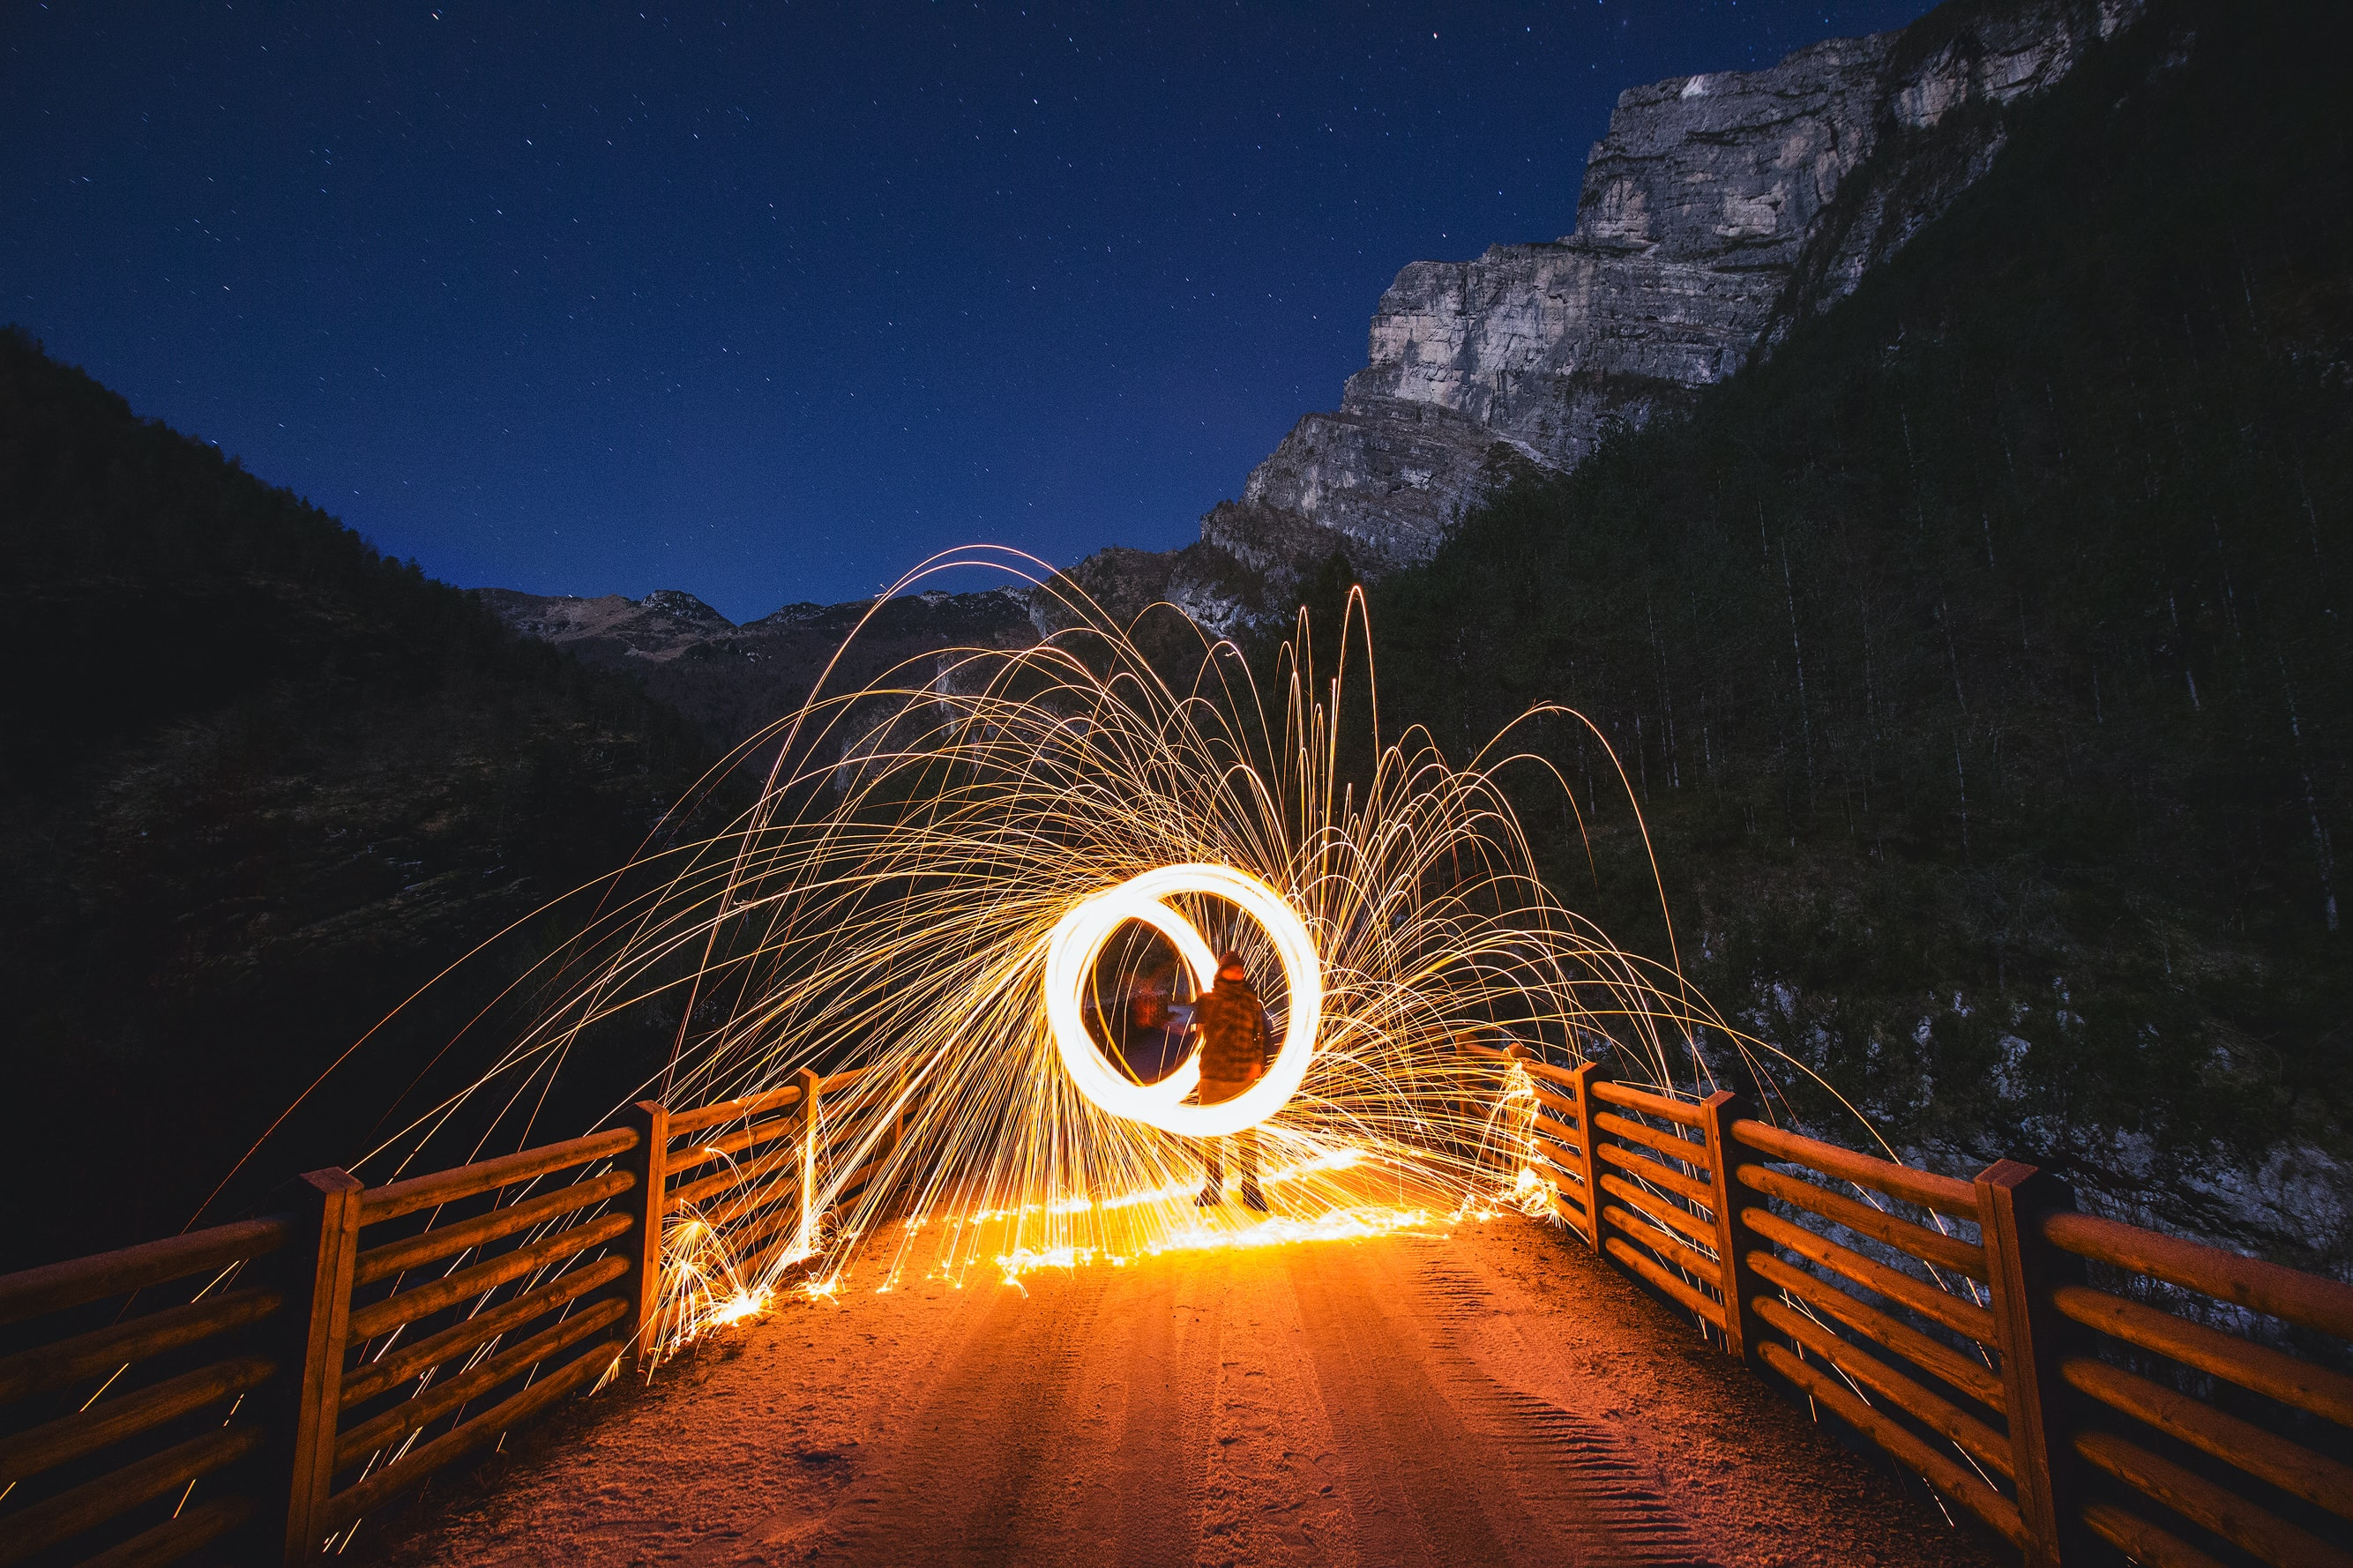 A person spinning sparklers to create circles of light in the mountains